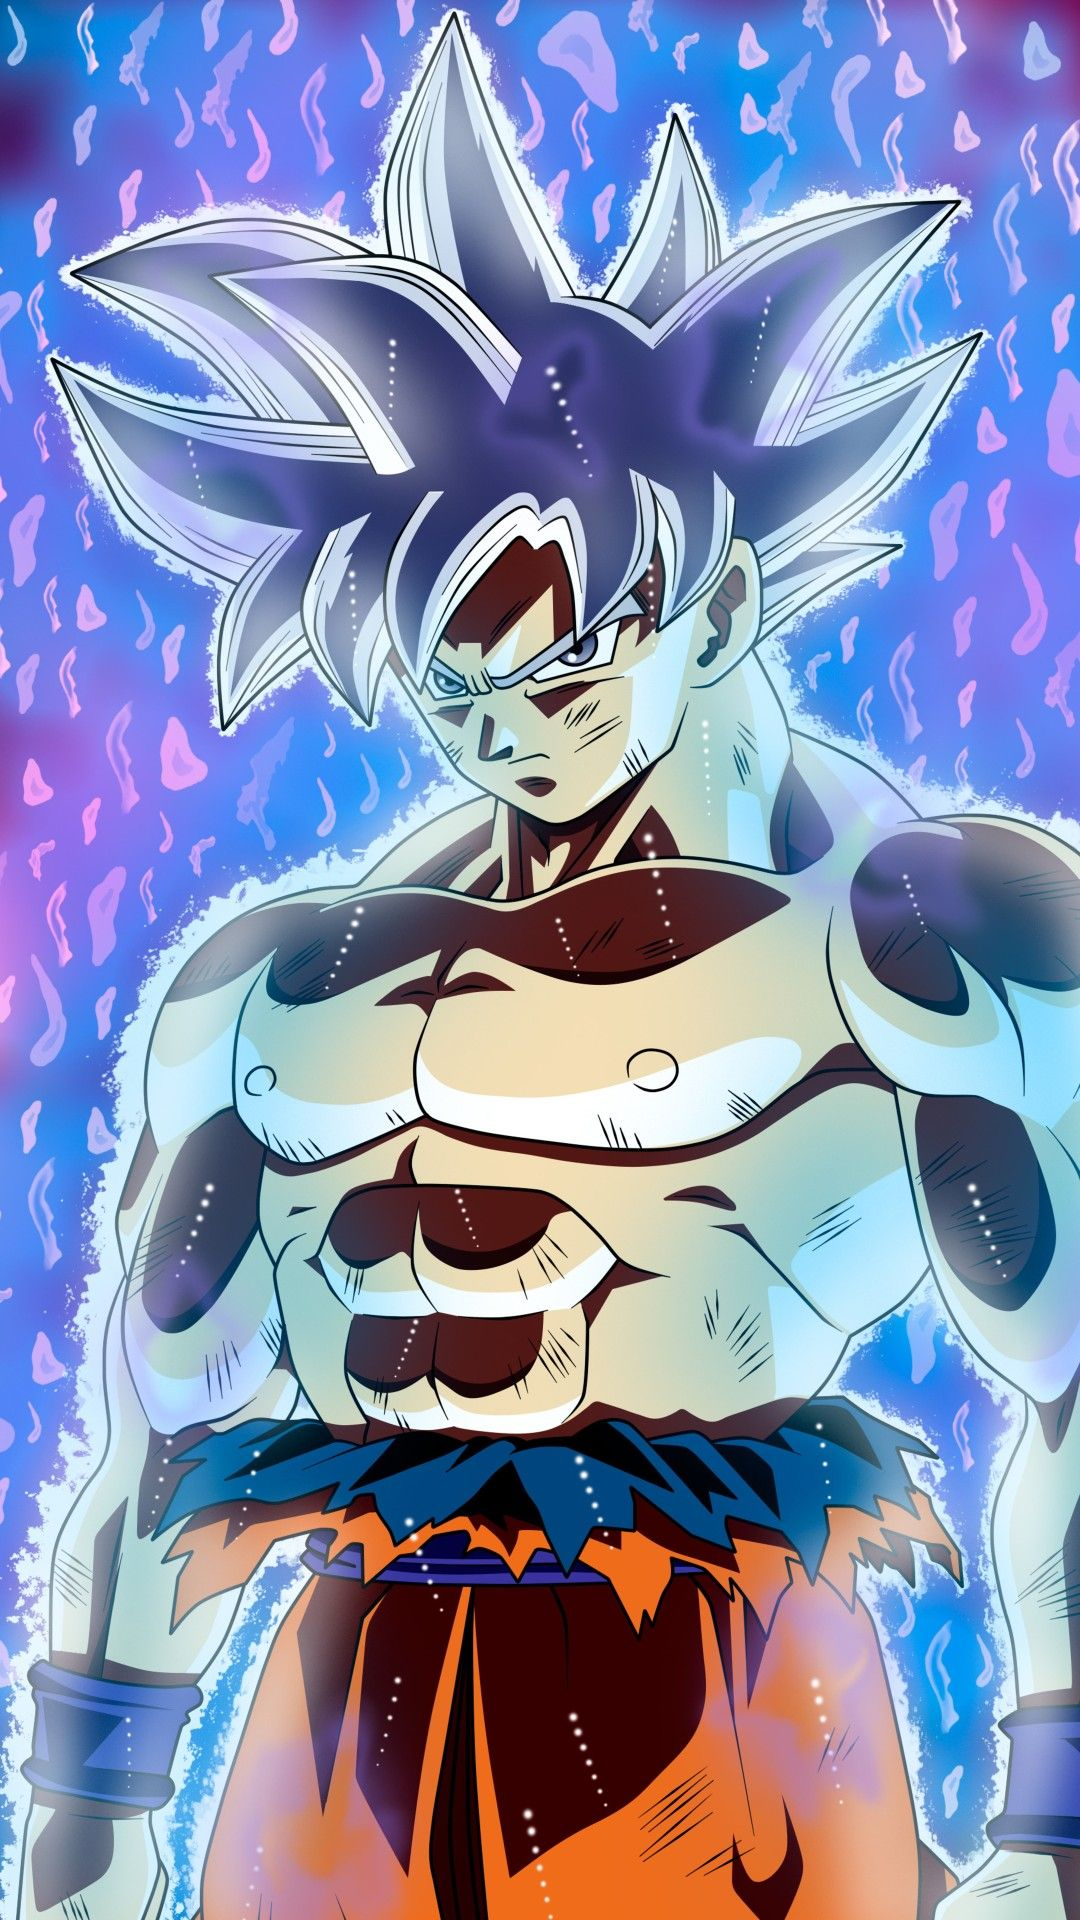 Goku Migatte No Gokui Perfec And Vegeta Son Wallpaper Mobile